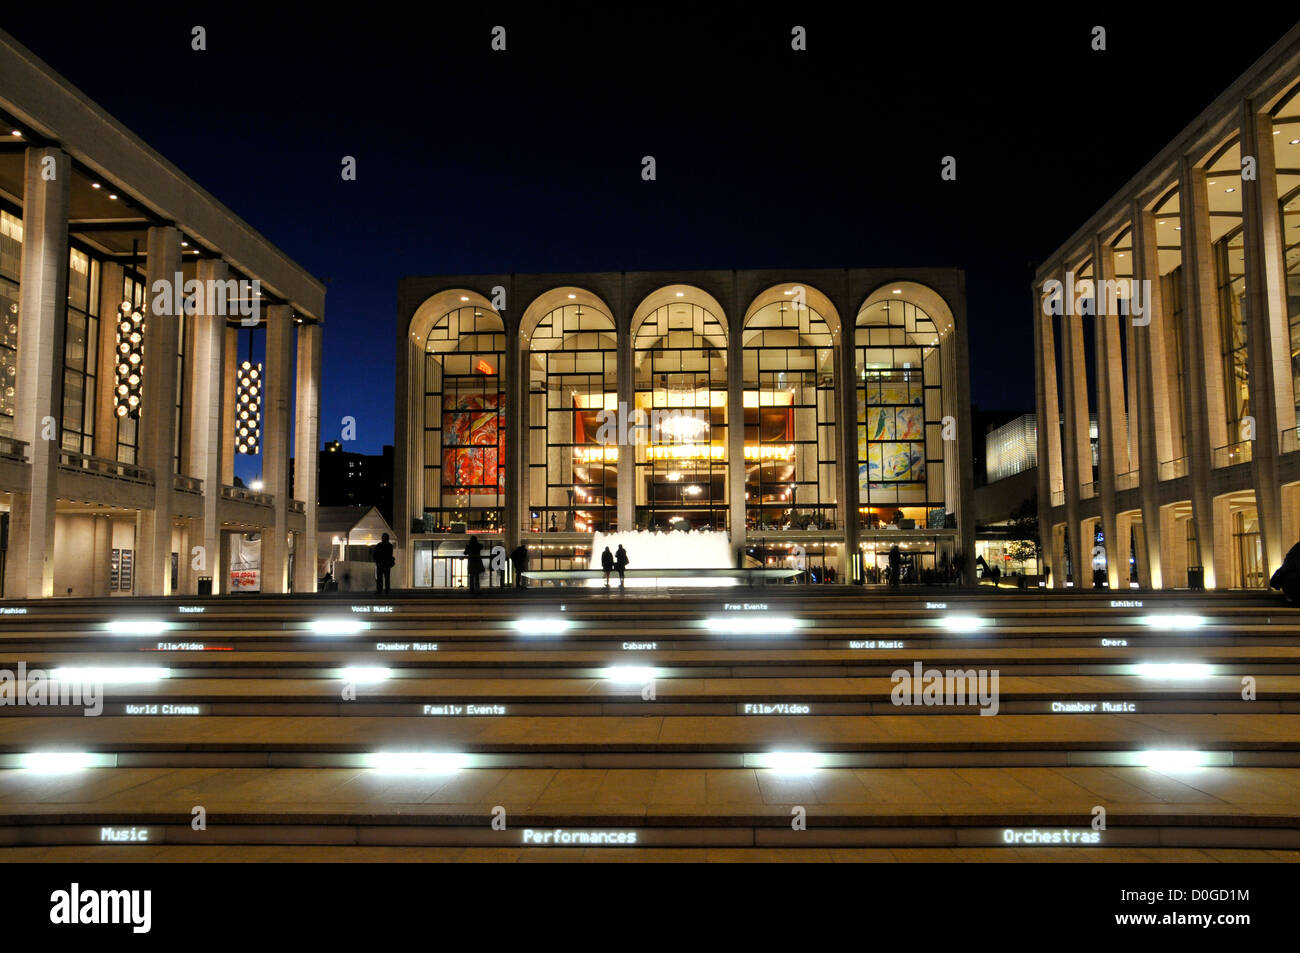 The renovated Lincoln Center Performing Arts center, Broadway, New York City, USA, - Stock Image